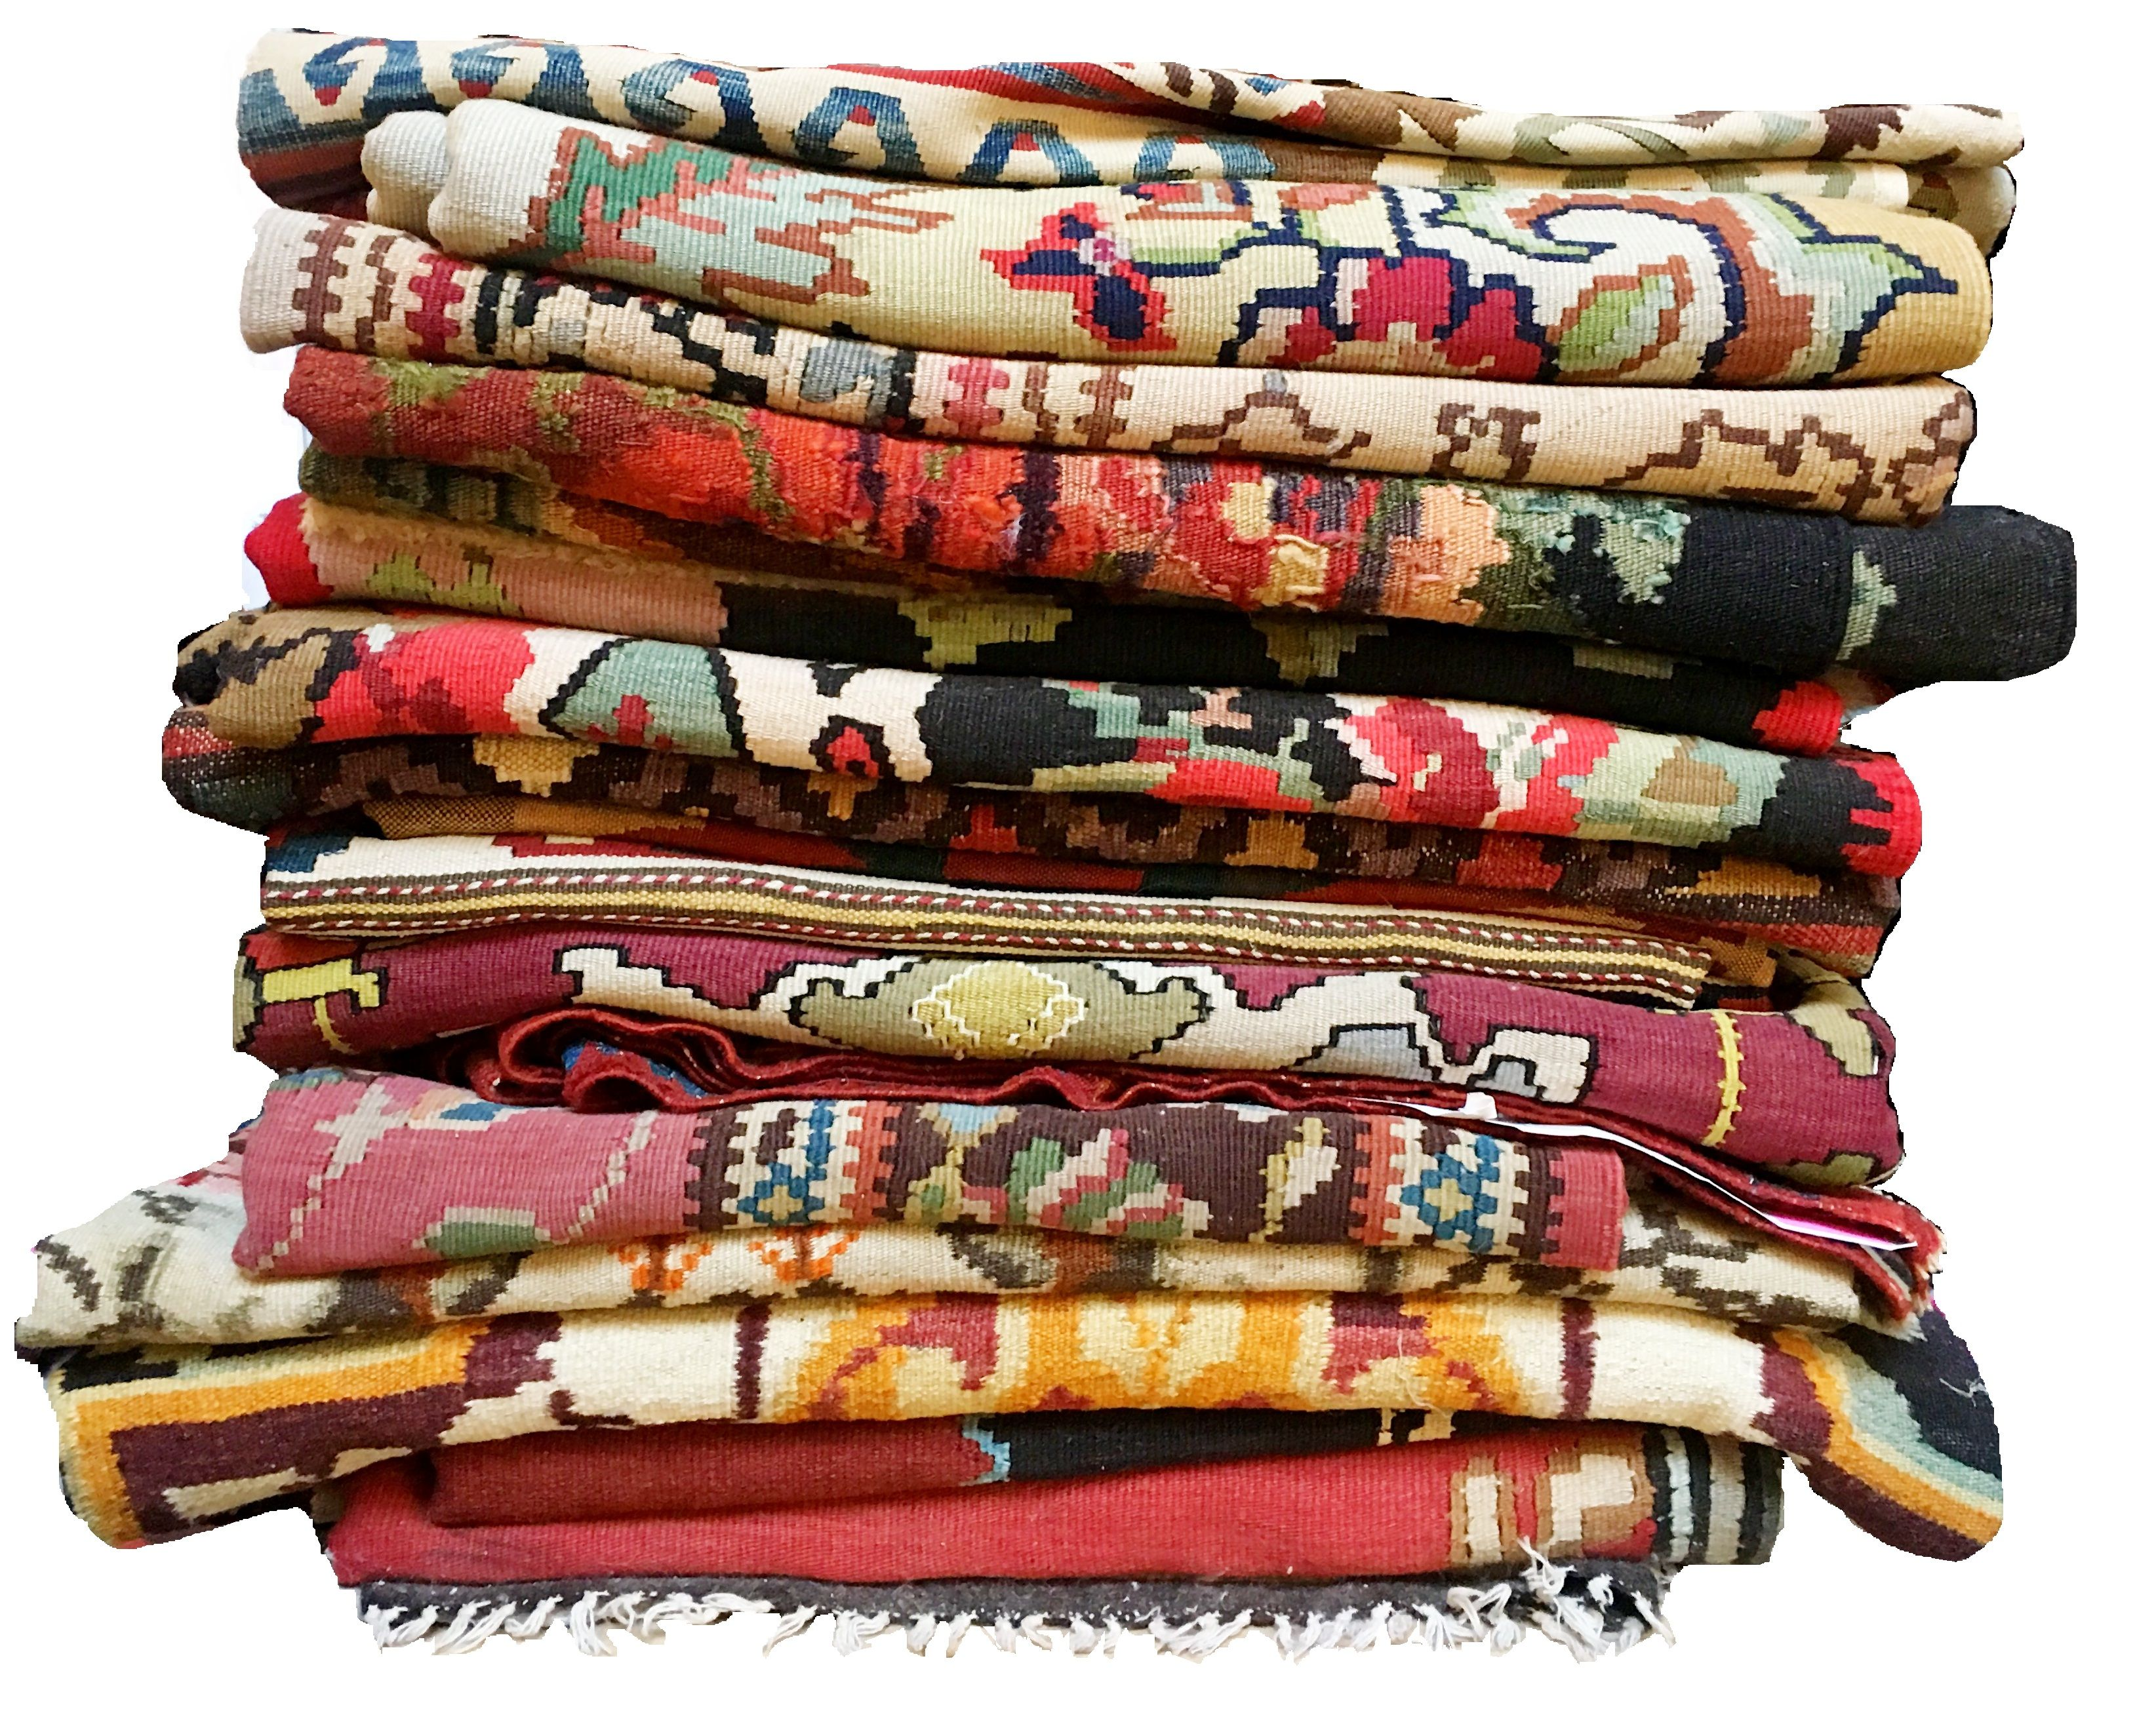 Behind The Design Every Motif Has A Meaning Within Every Flat Weave There Is A Journey Of A Weaver Explore Their S Rugs On Carpet Flat Weave Rug Flat Weave